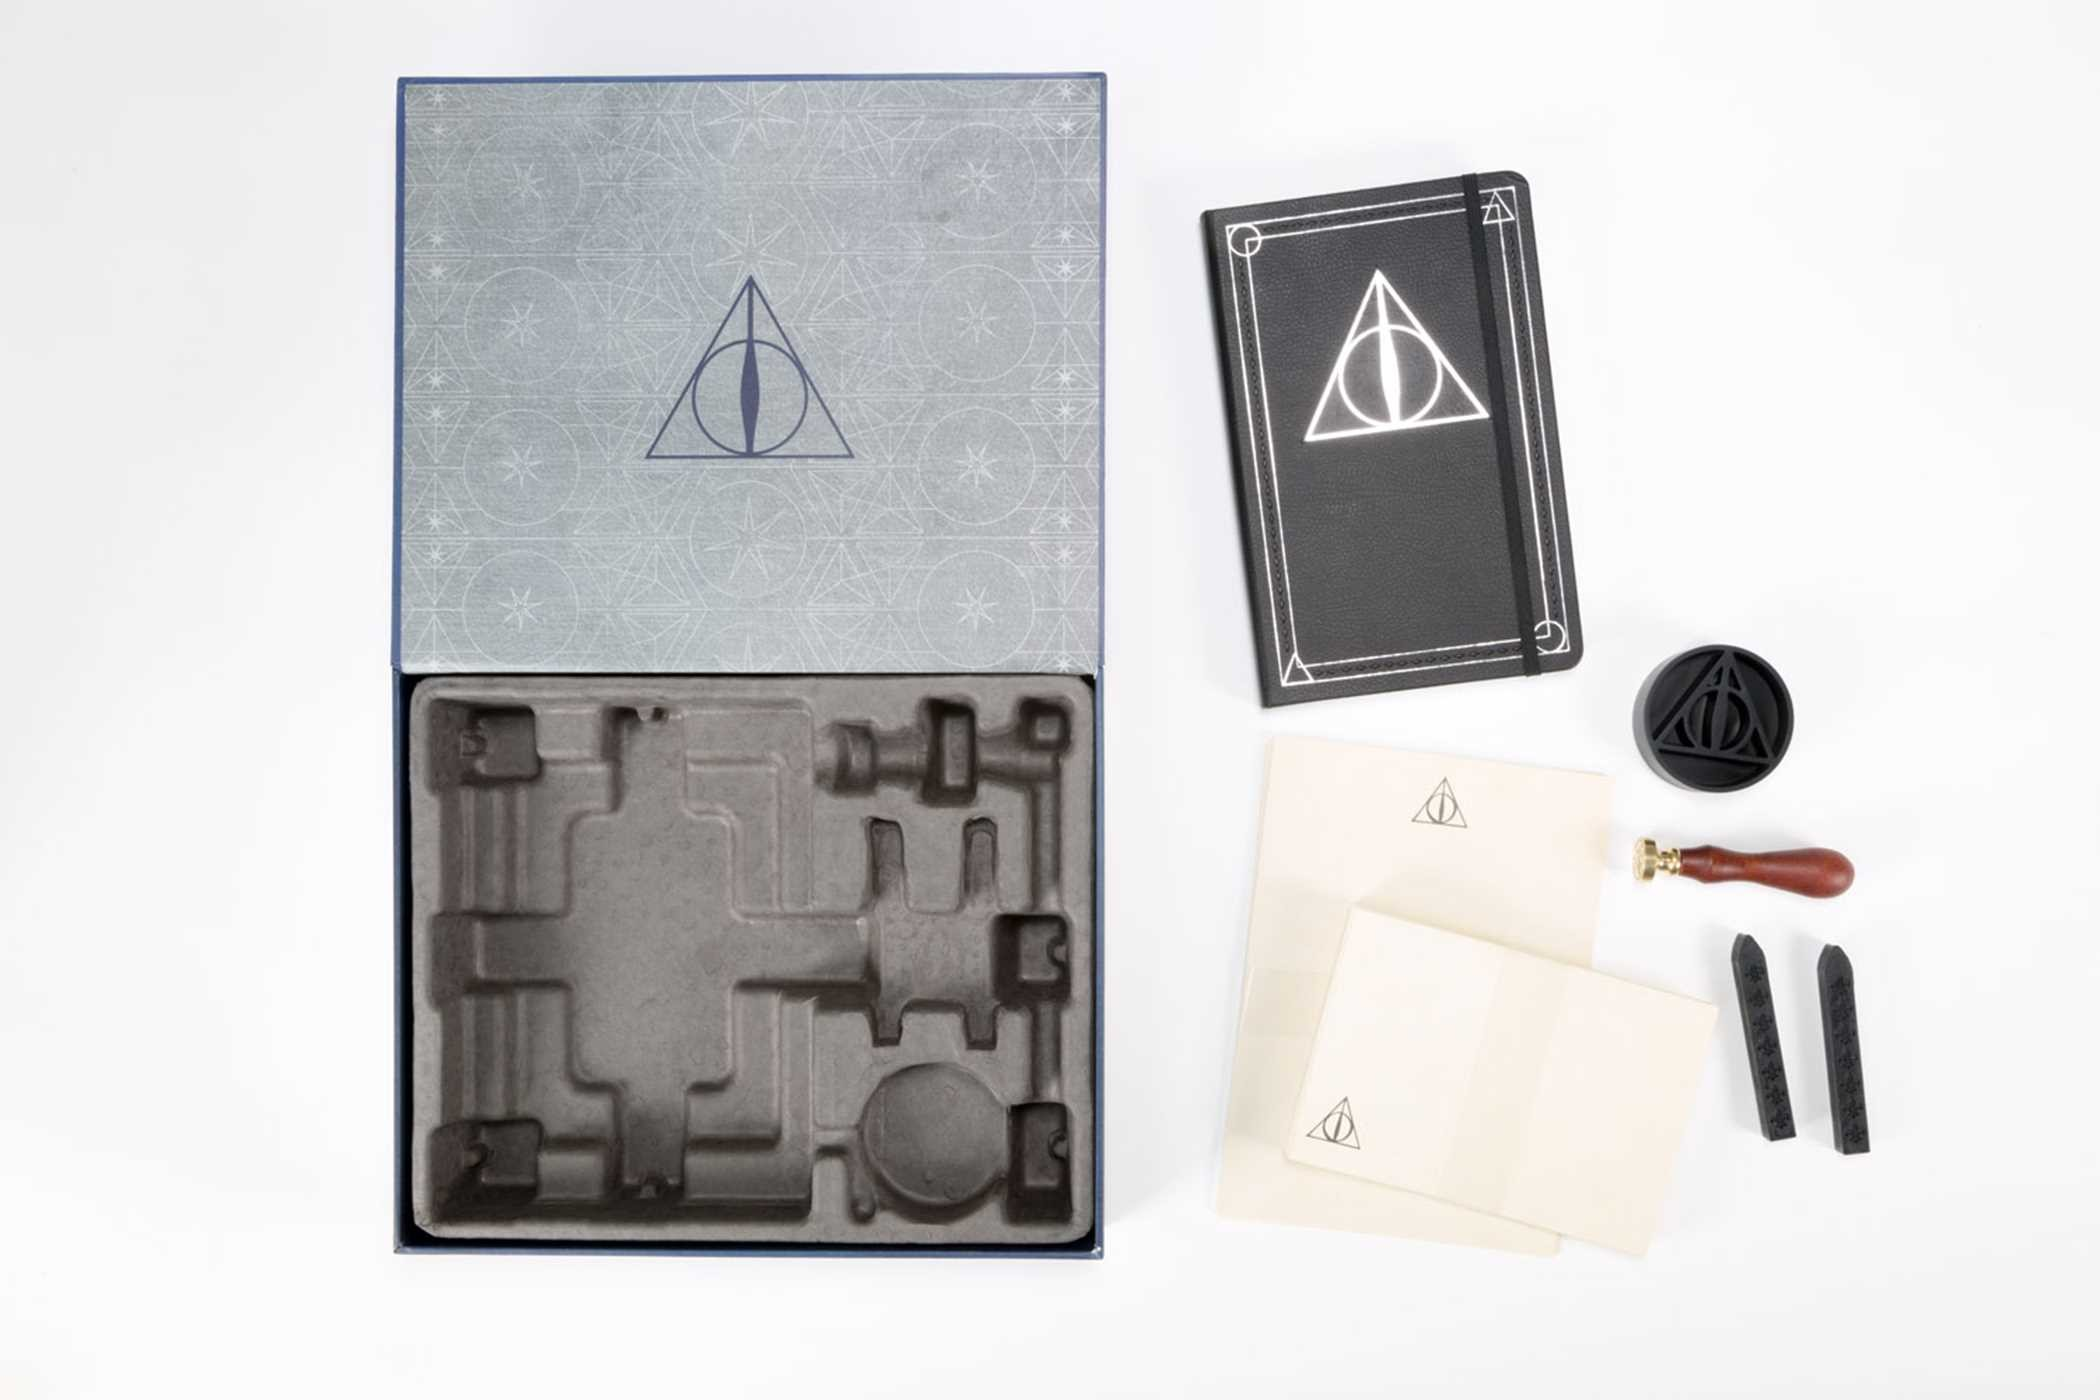 Harry potter the deathly hallows deluxe stationery set book by harry potter the deathly hallows deluxe stationery set 978160887963202 biocorpaavc